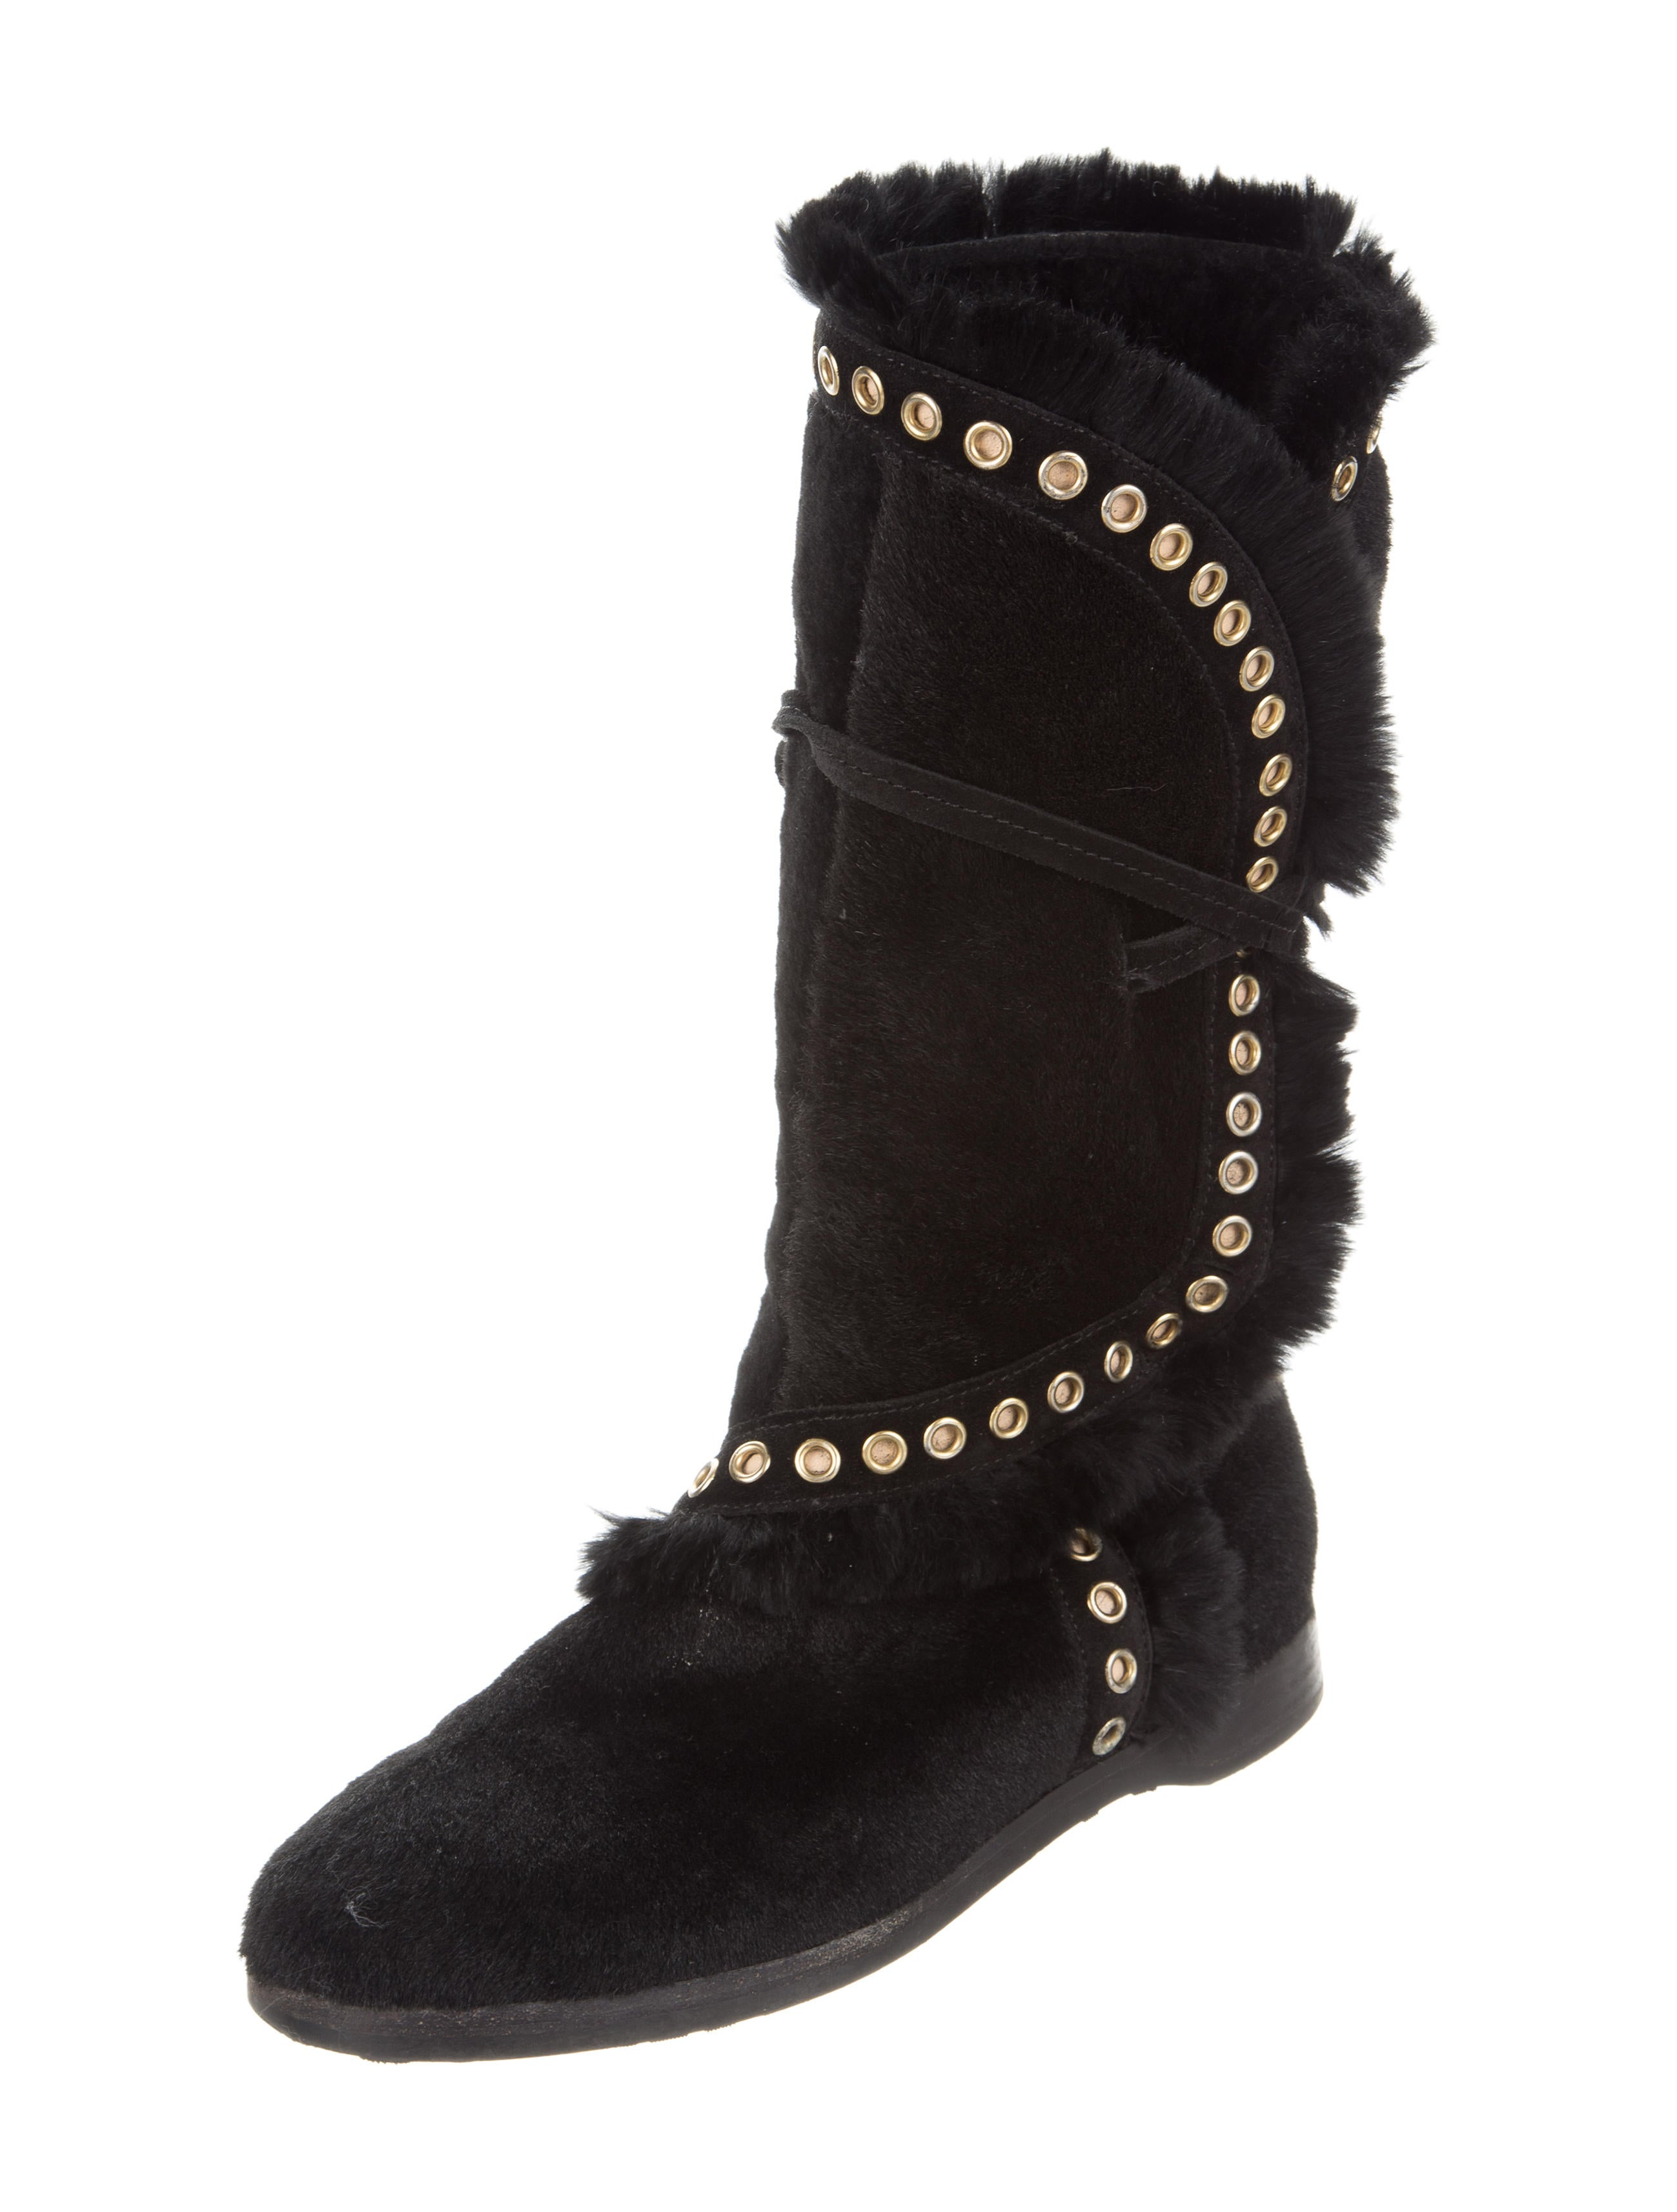 buy cheap outlet store Jimmy Choo Fur-Lined Mid-Calf Boots cheap sale supply find great online cheap 2014 SAbWnHs6tq